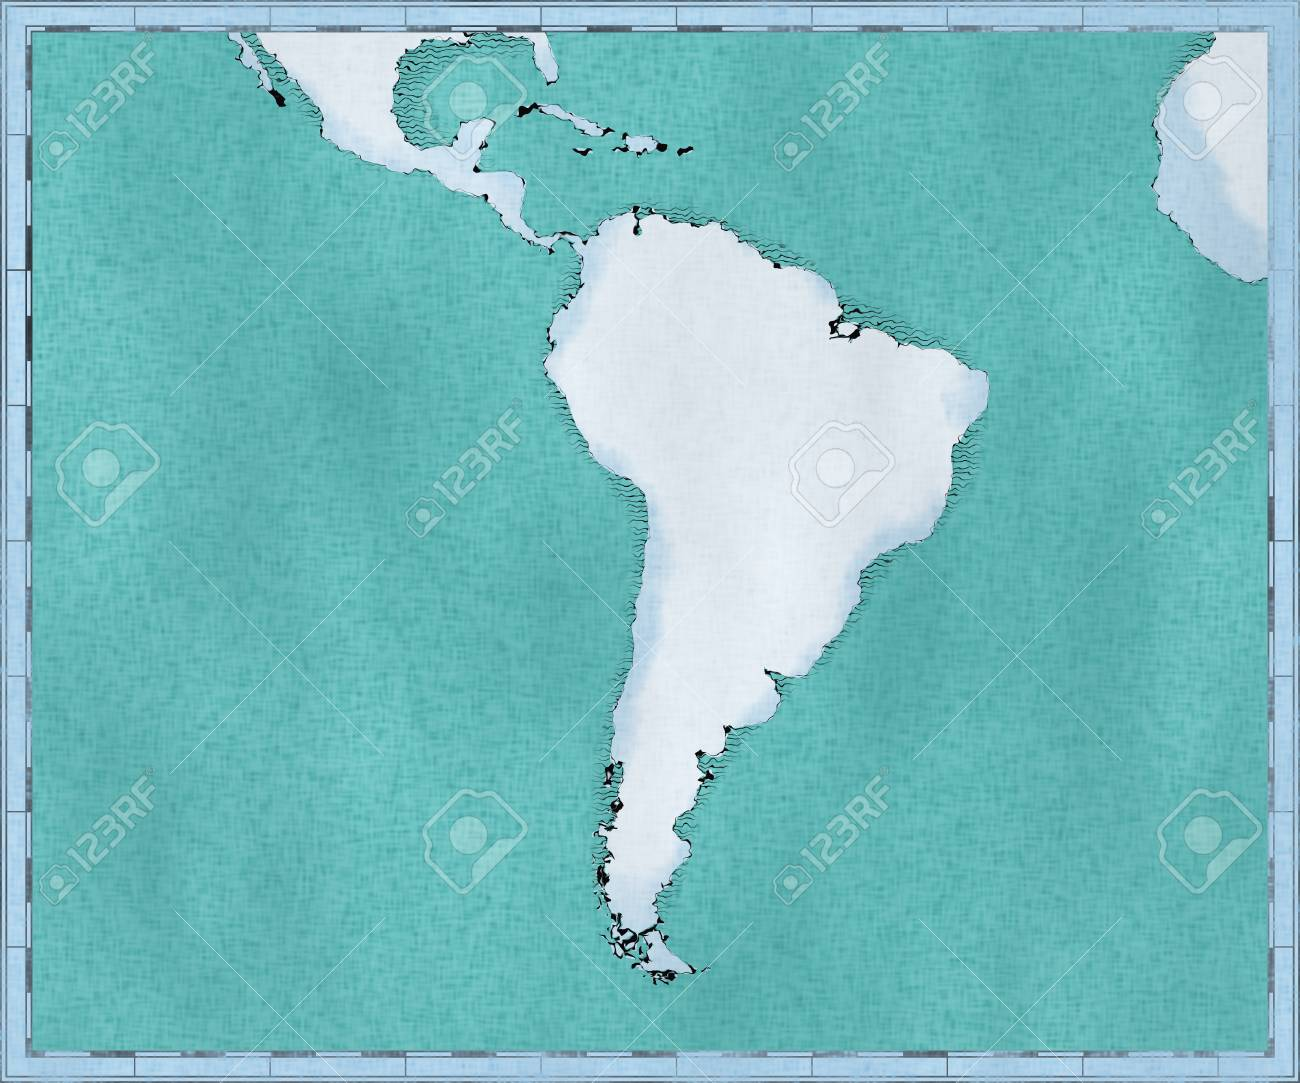 Geographic Map Of Latin America on geographic map of modern europe, geographic map of netherlands, geographic map of guadalajara, geographic map of denmark, geographic map of lebanon, geographic map of czech republic, geographic map of san salvador, geographic map of pacific ocean, geographic map of new york state, geographic map of belize, geographic map of serbia, geographic map of arab countries, geographic map of hong kong, geographic map of the caribbean, geographic map of scandinavia, geographic map of far east, geographic map of ghana, geographic map of bahrain, geographic map of japan, geographic map of gobi desert,